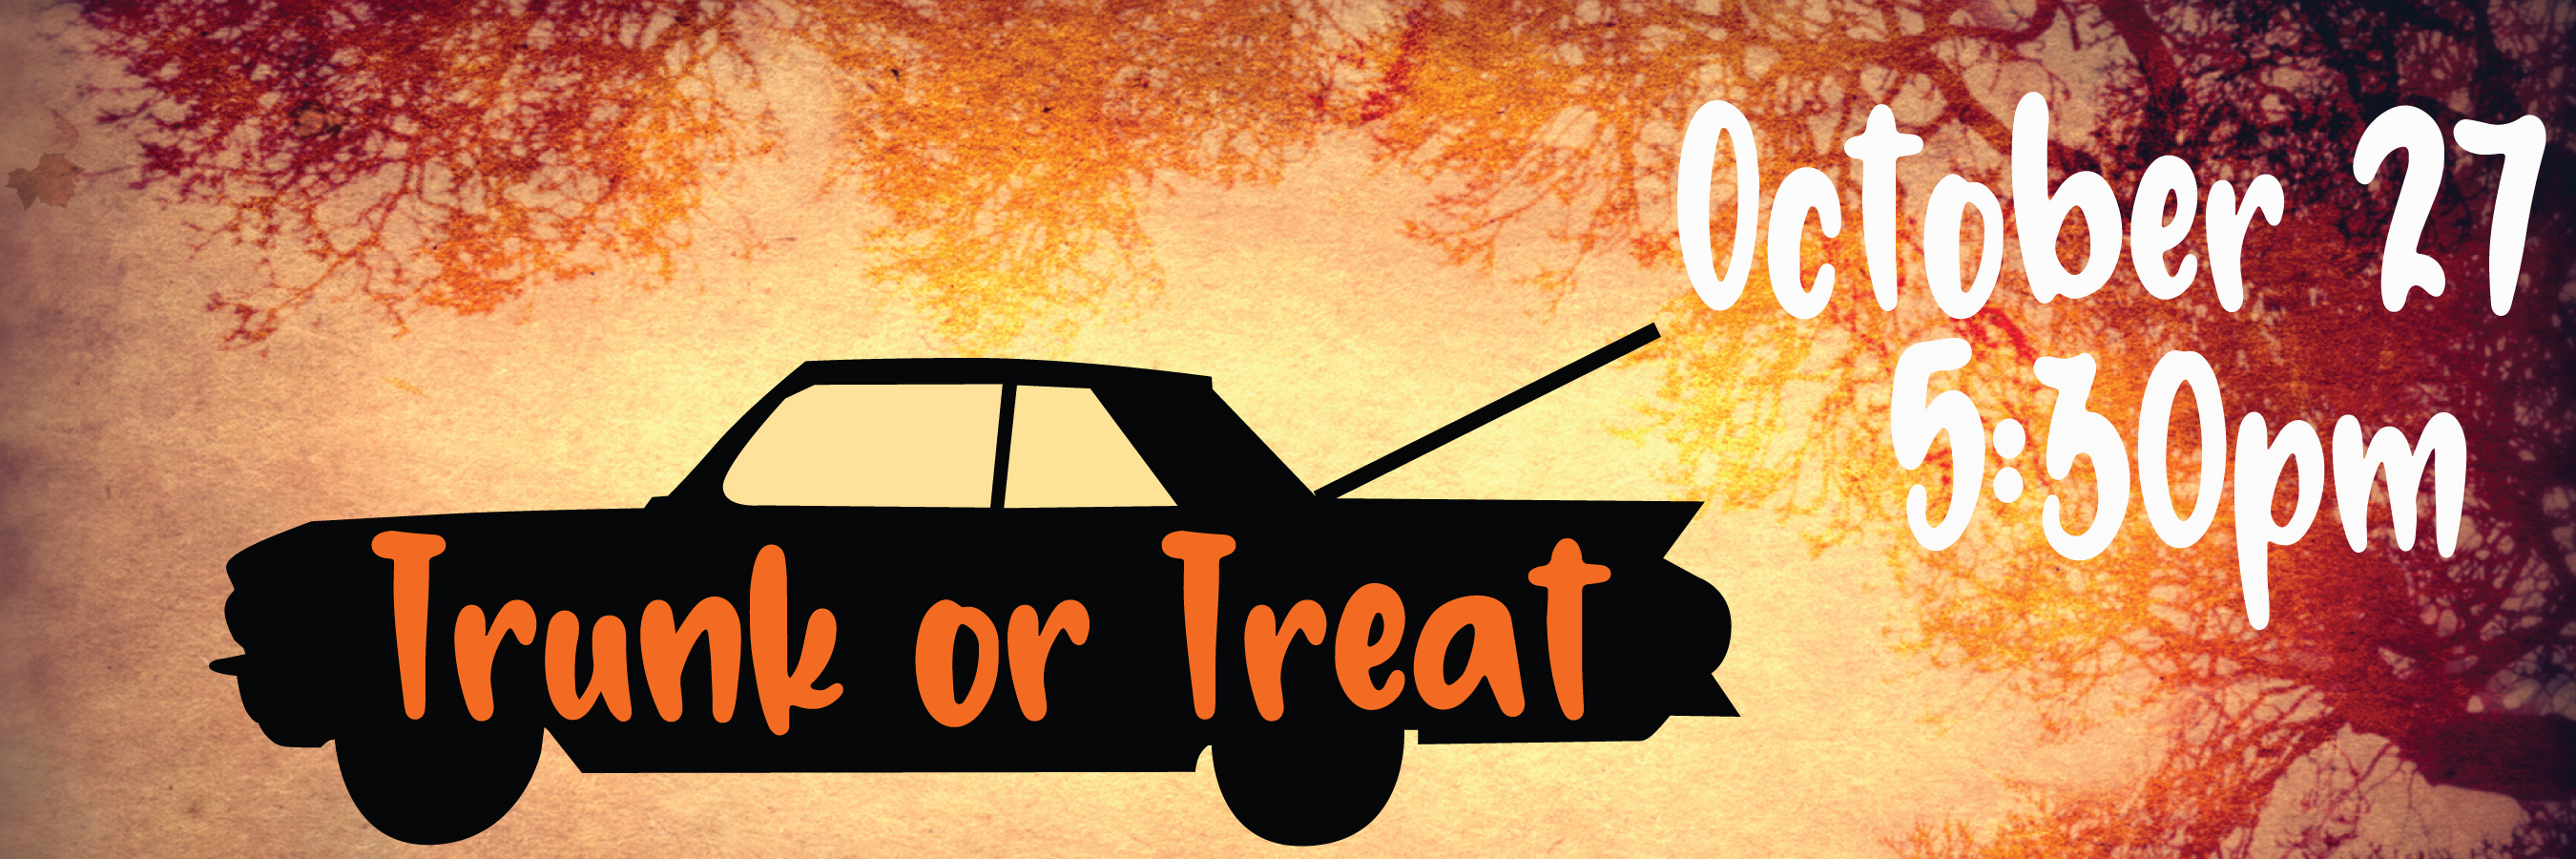 banner-trunk-or-treat18